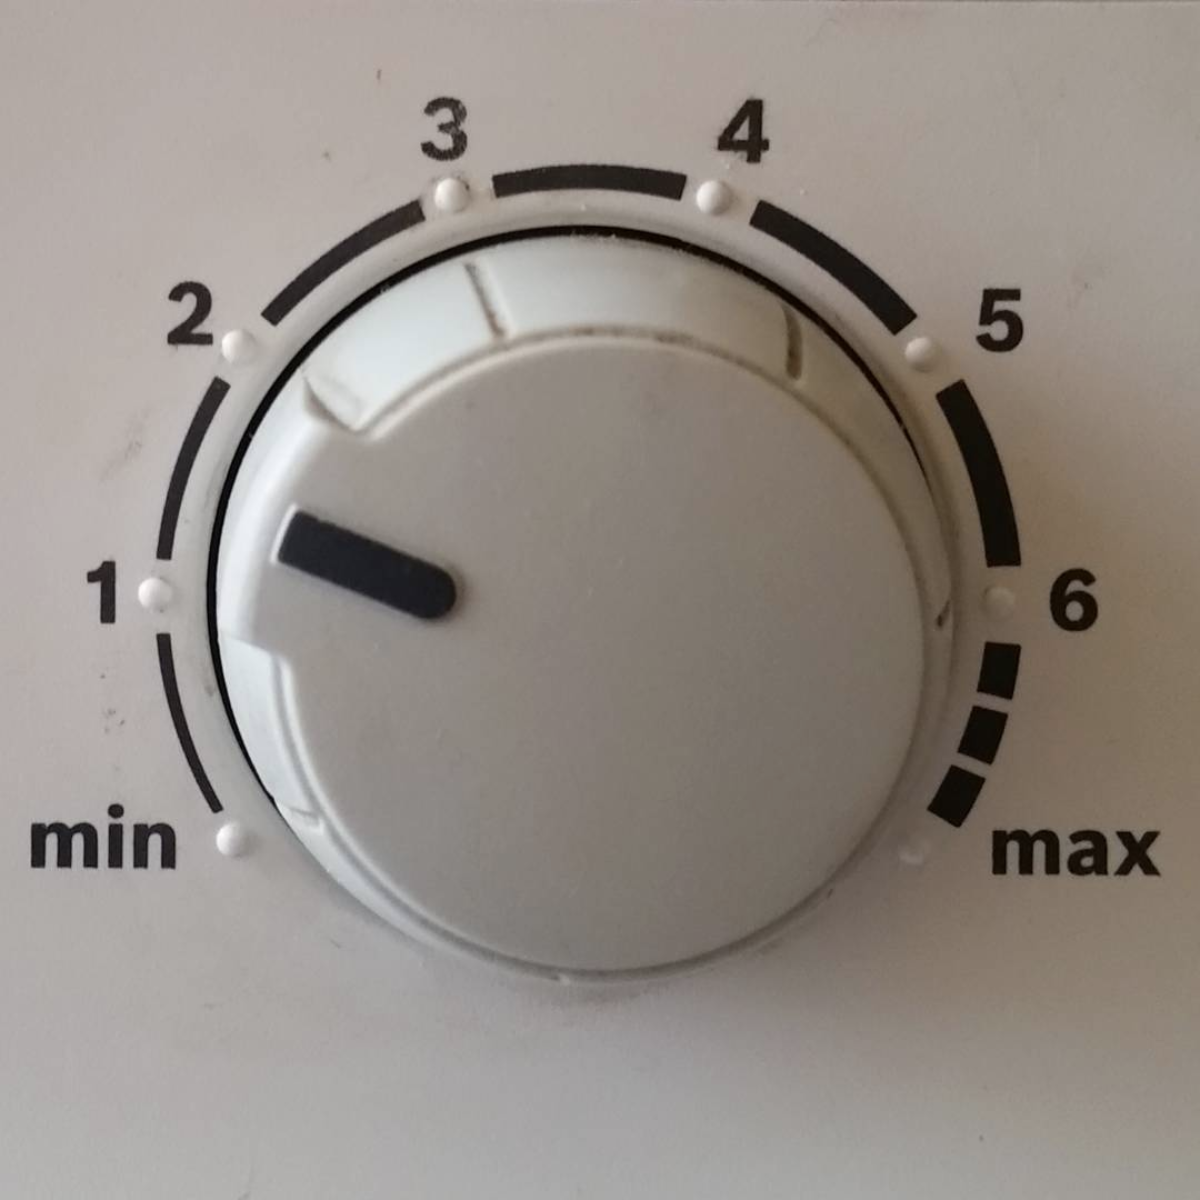 Minimum maximum dial for heating